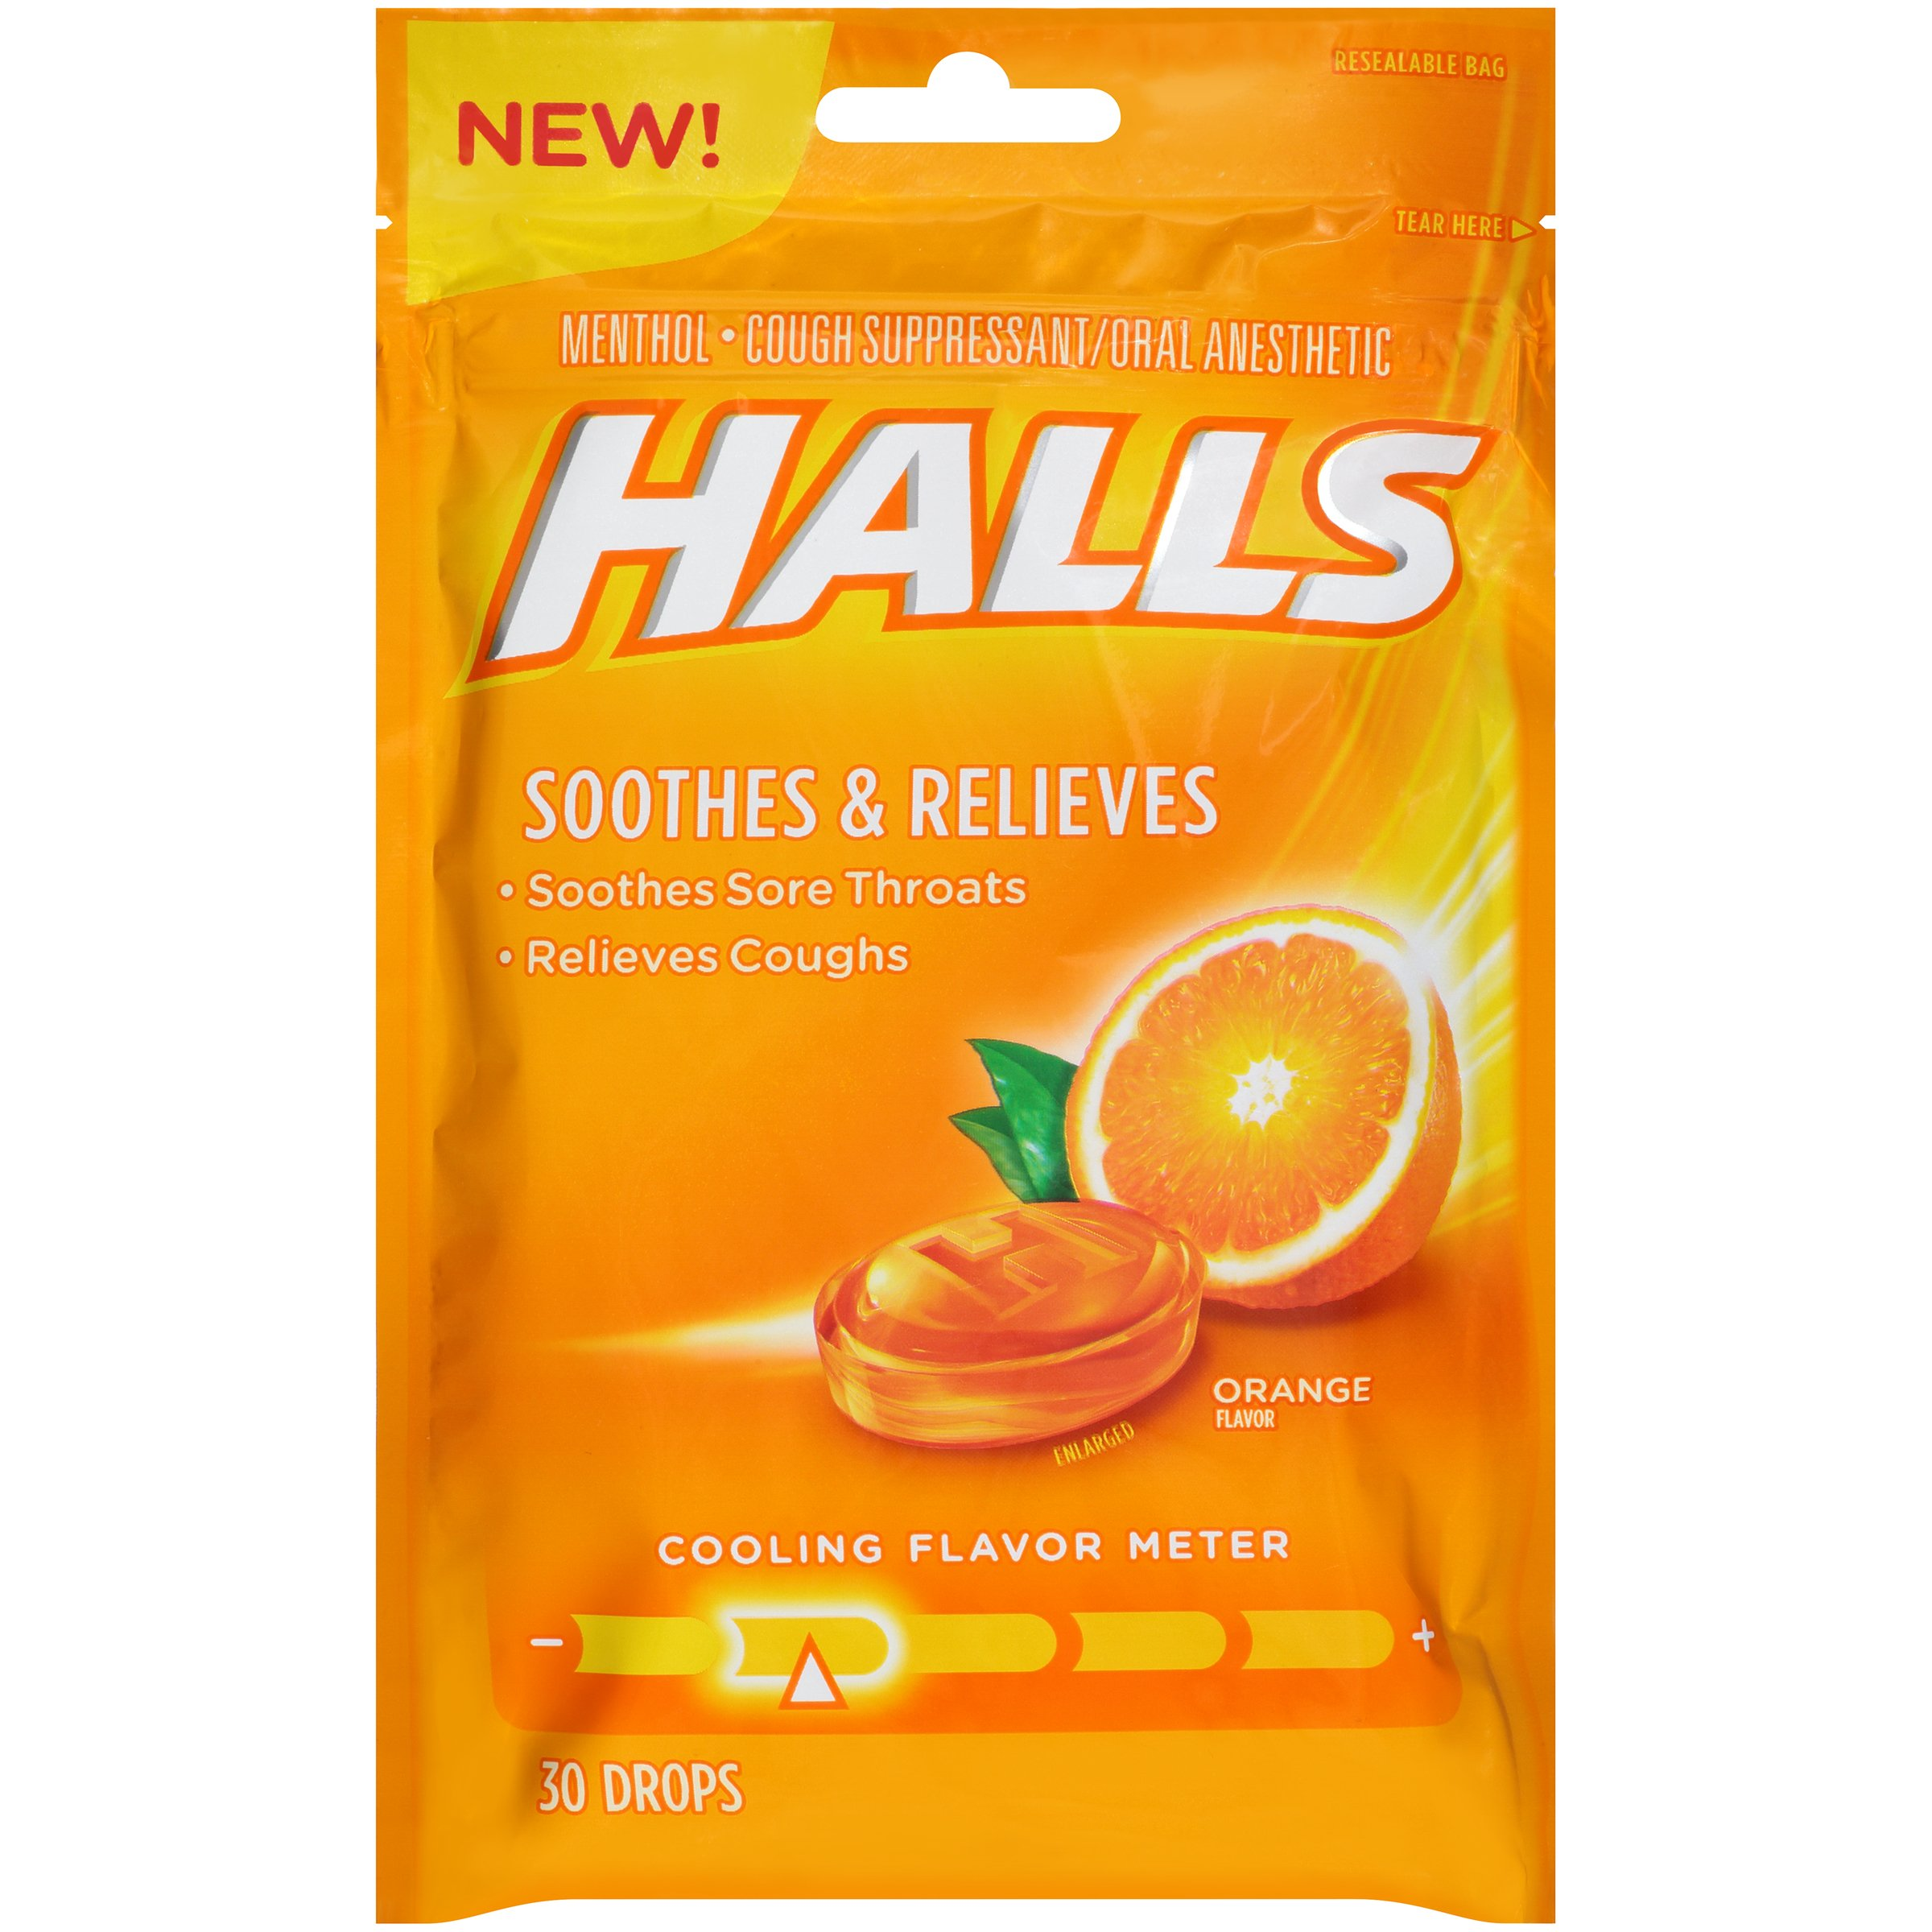 Halls Orange Cough Drops - with Menthol - 30 Drops (1 bag of 30 drops) by Halls (Image #1)